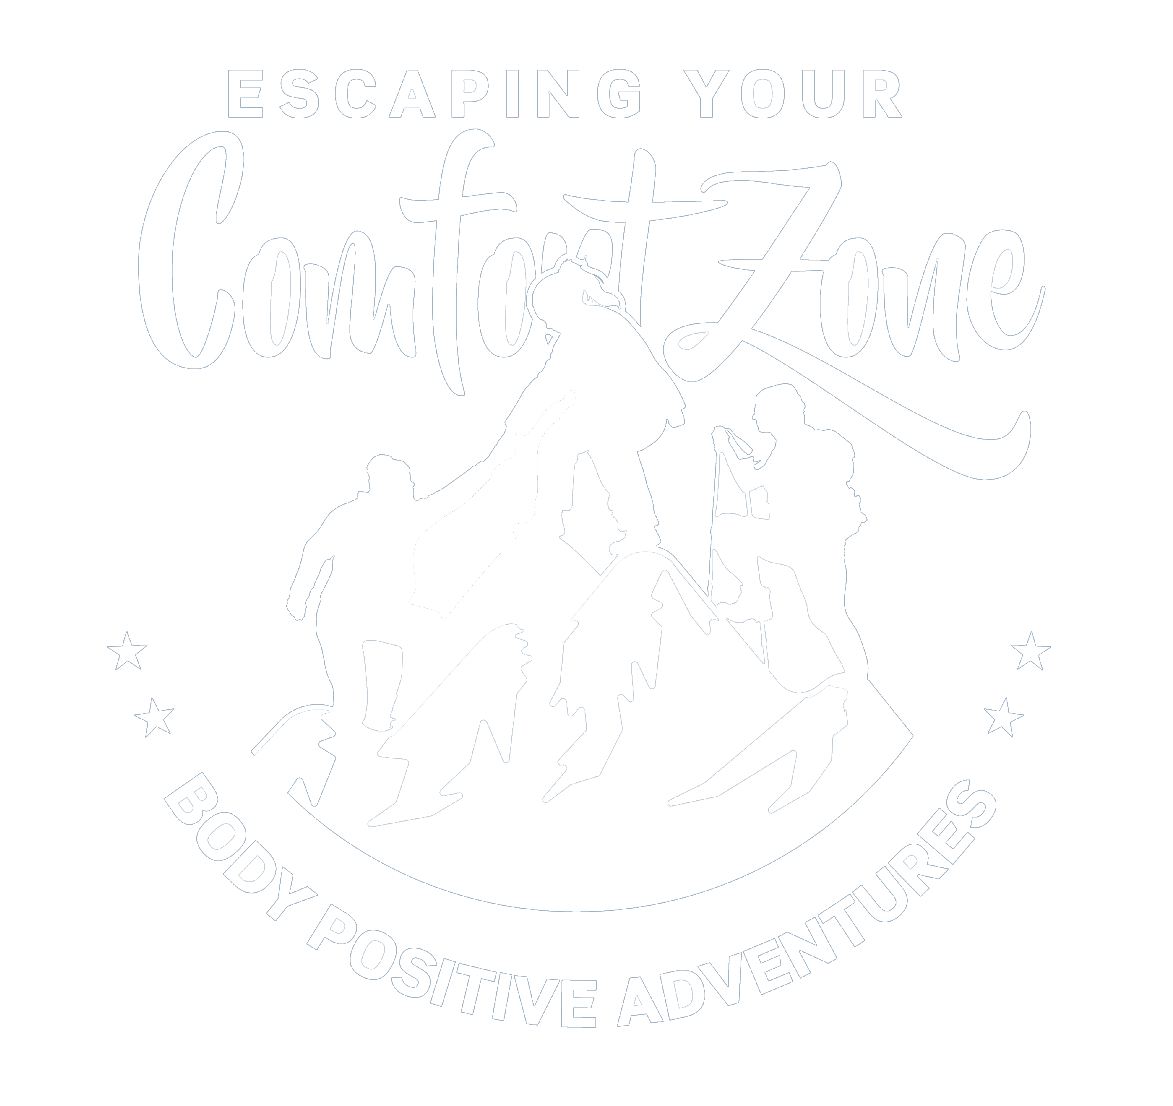 ESCAPING YOUR COMFORT ZONE - LOGO DESIGN-1 WHITE.png